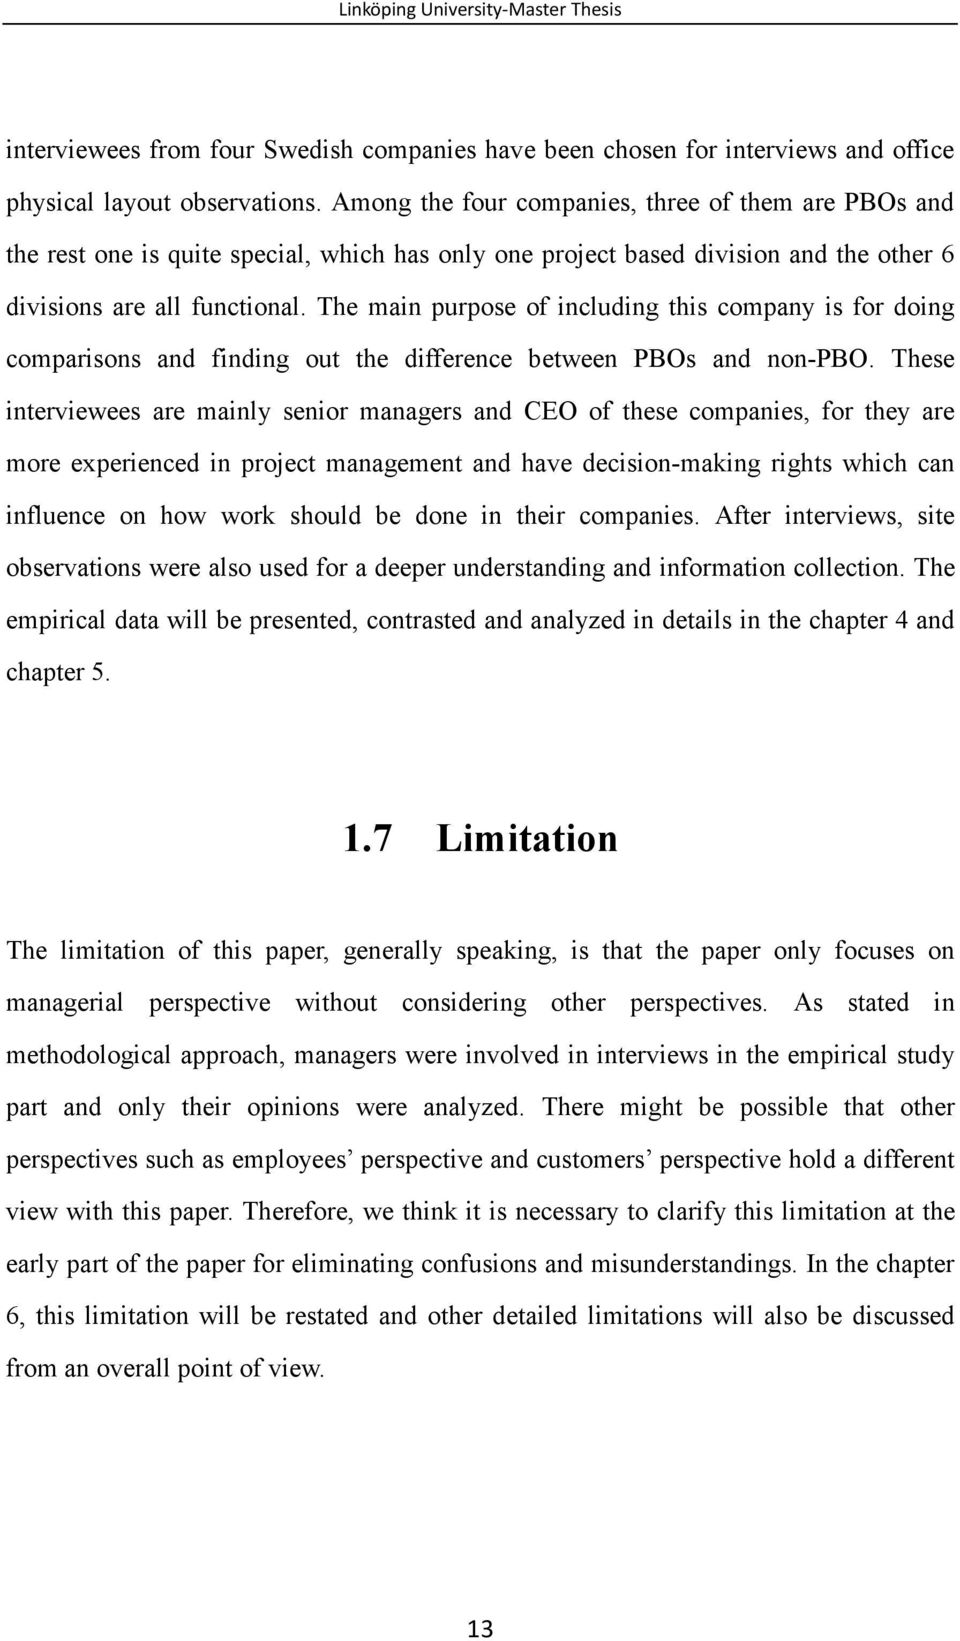 master thesis empirical part